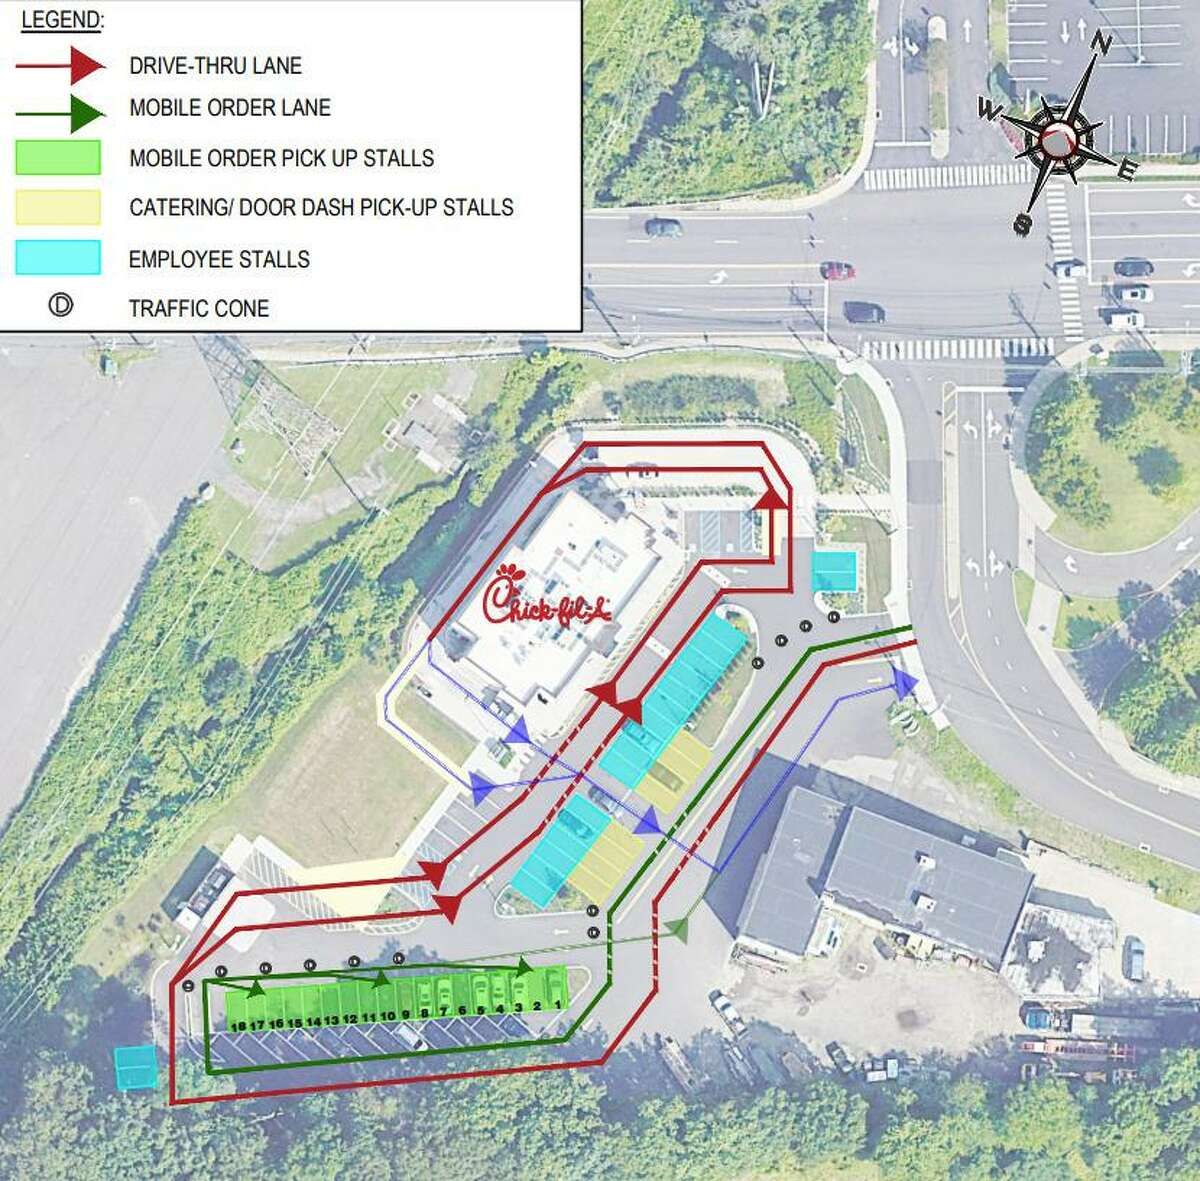 A mockup shows a proposed traffic pattern at the Connecticut Avenue Chick-fil-A, which has been plagued by congestion issues